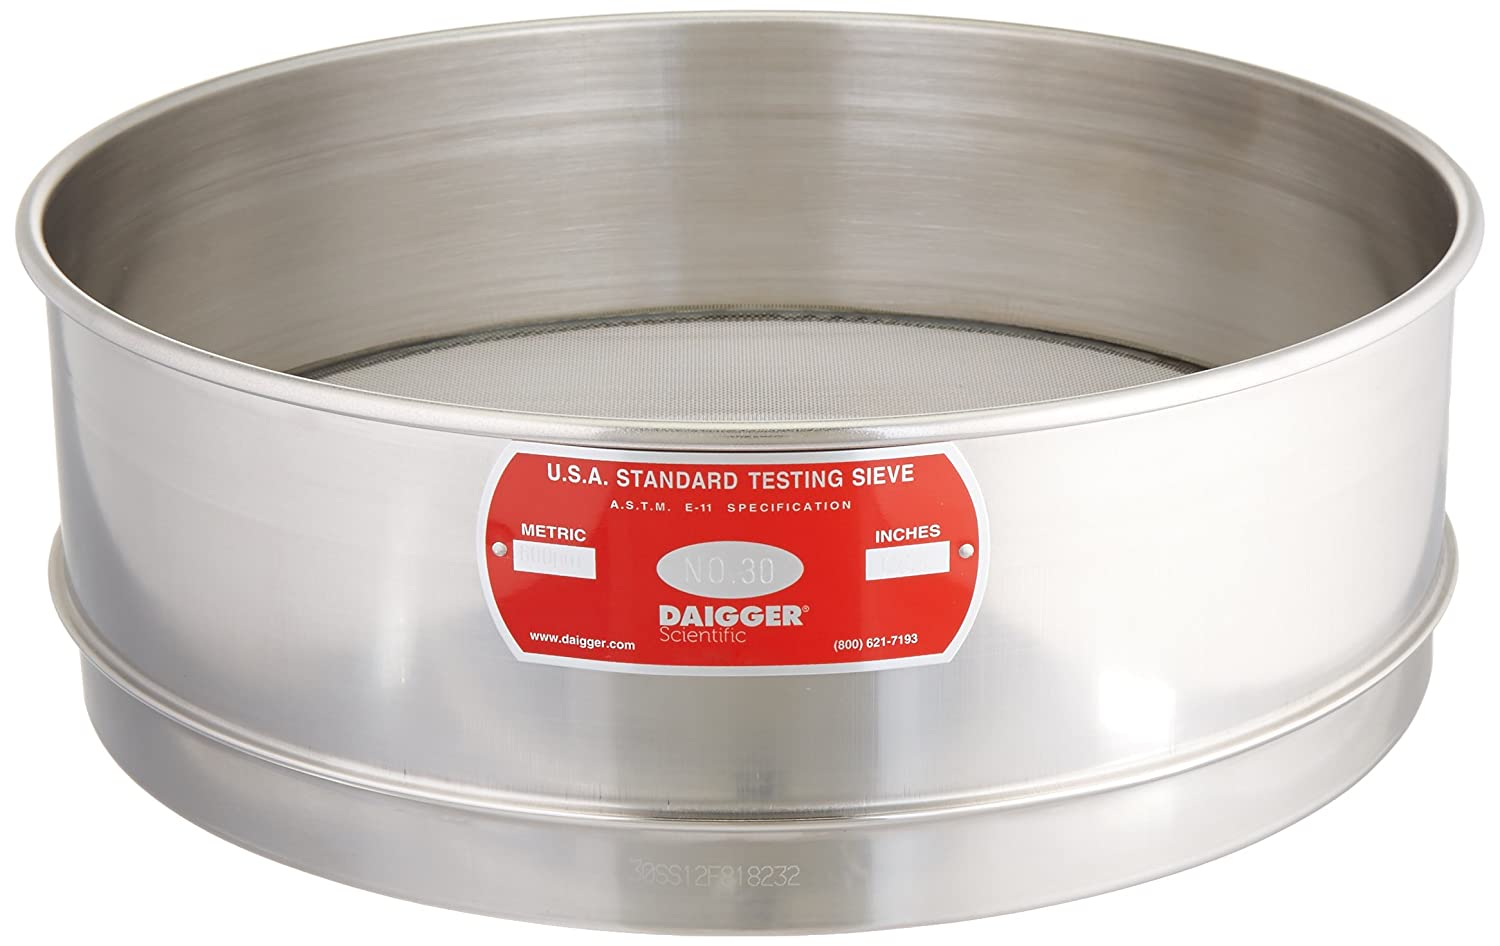 Image of Sieves ADVANTECH MANUFACTURING 30SS12F Stainless Steel Test Sieve, 12' Diameter, 30 Mesh Size